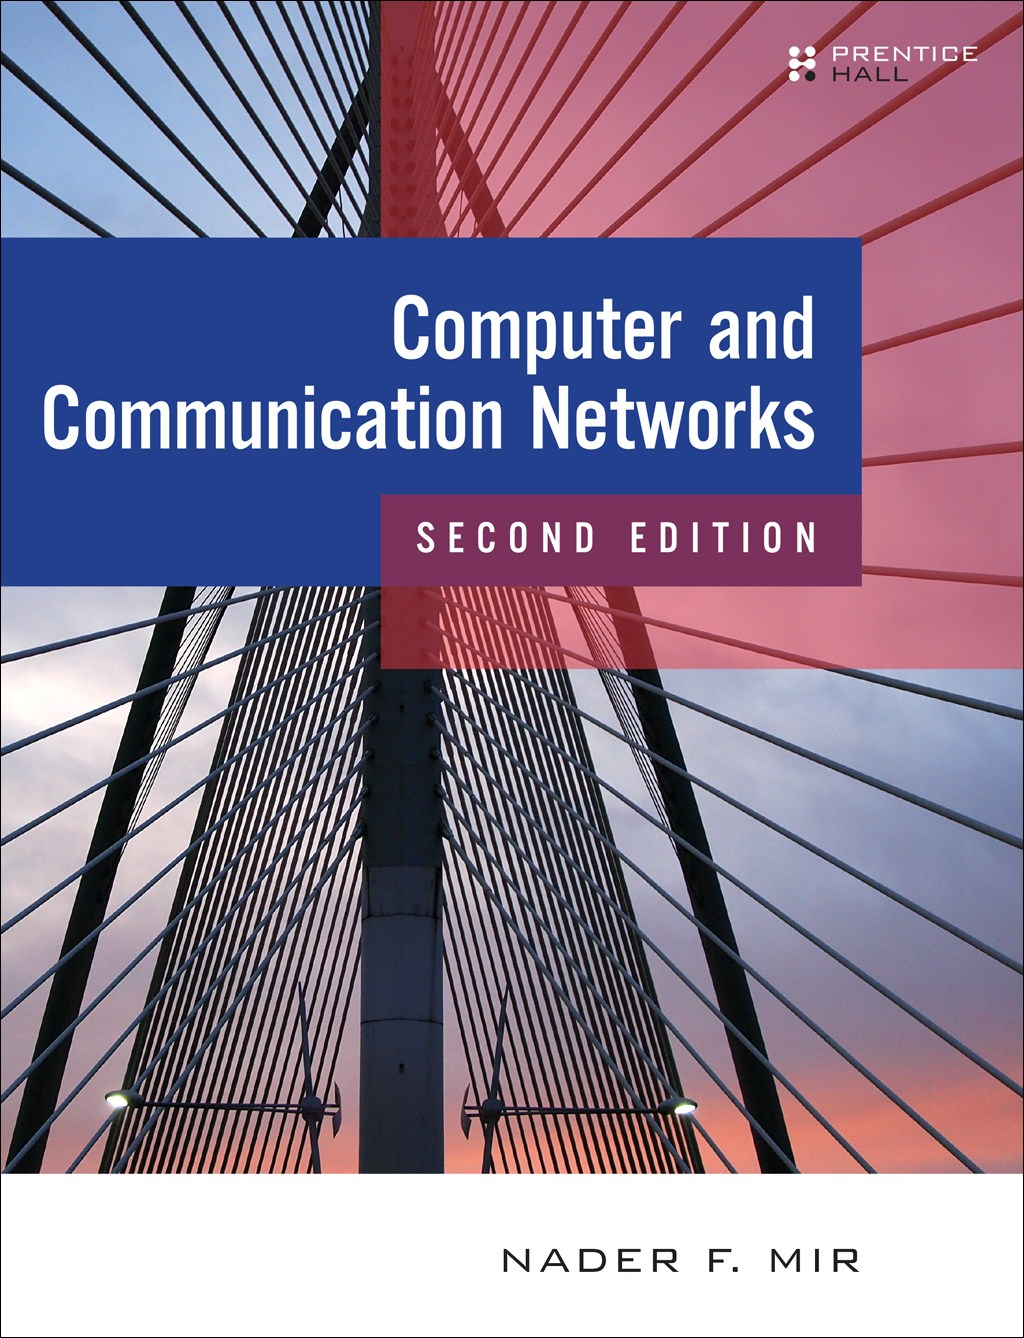 Computer and Communication Networks, 2nd Edition